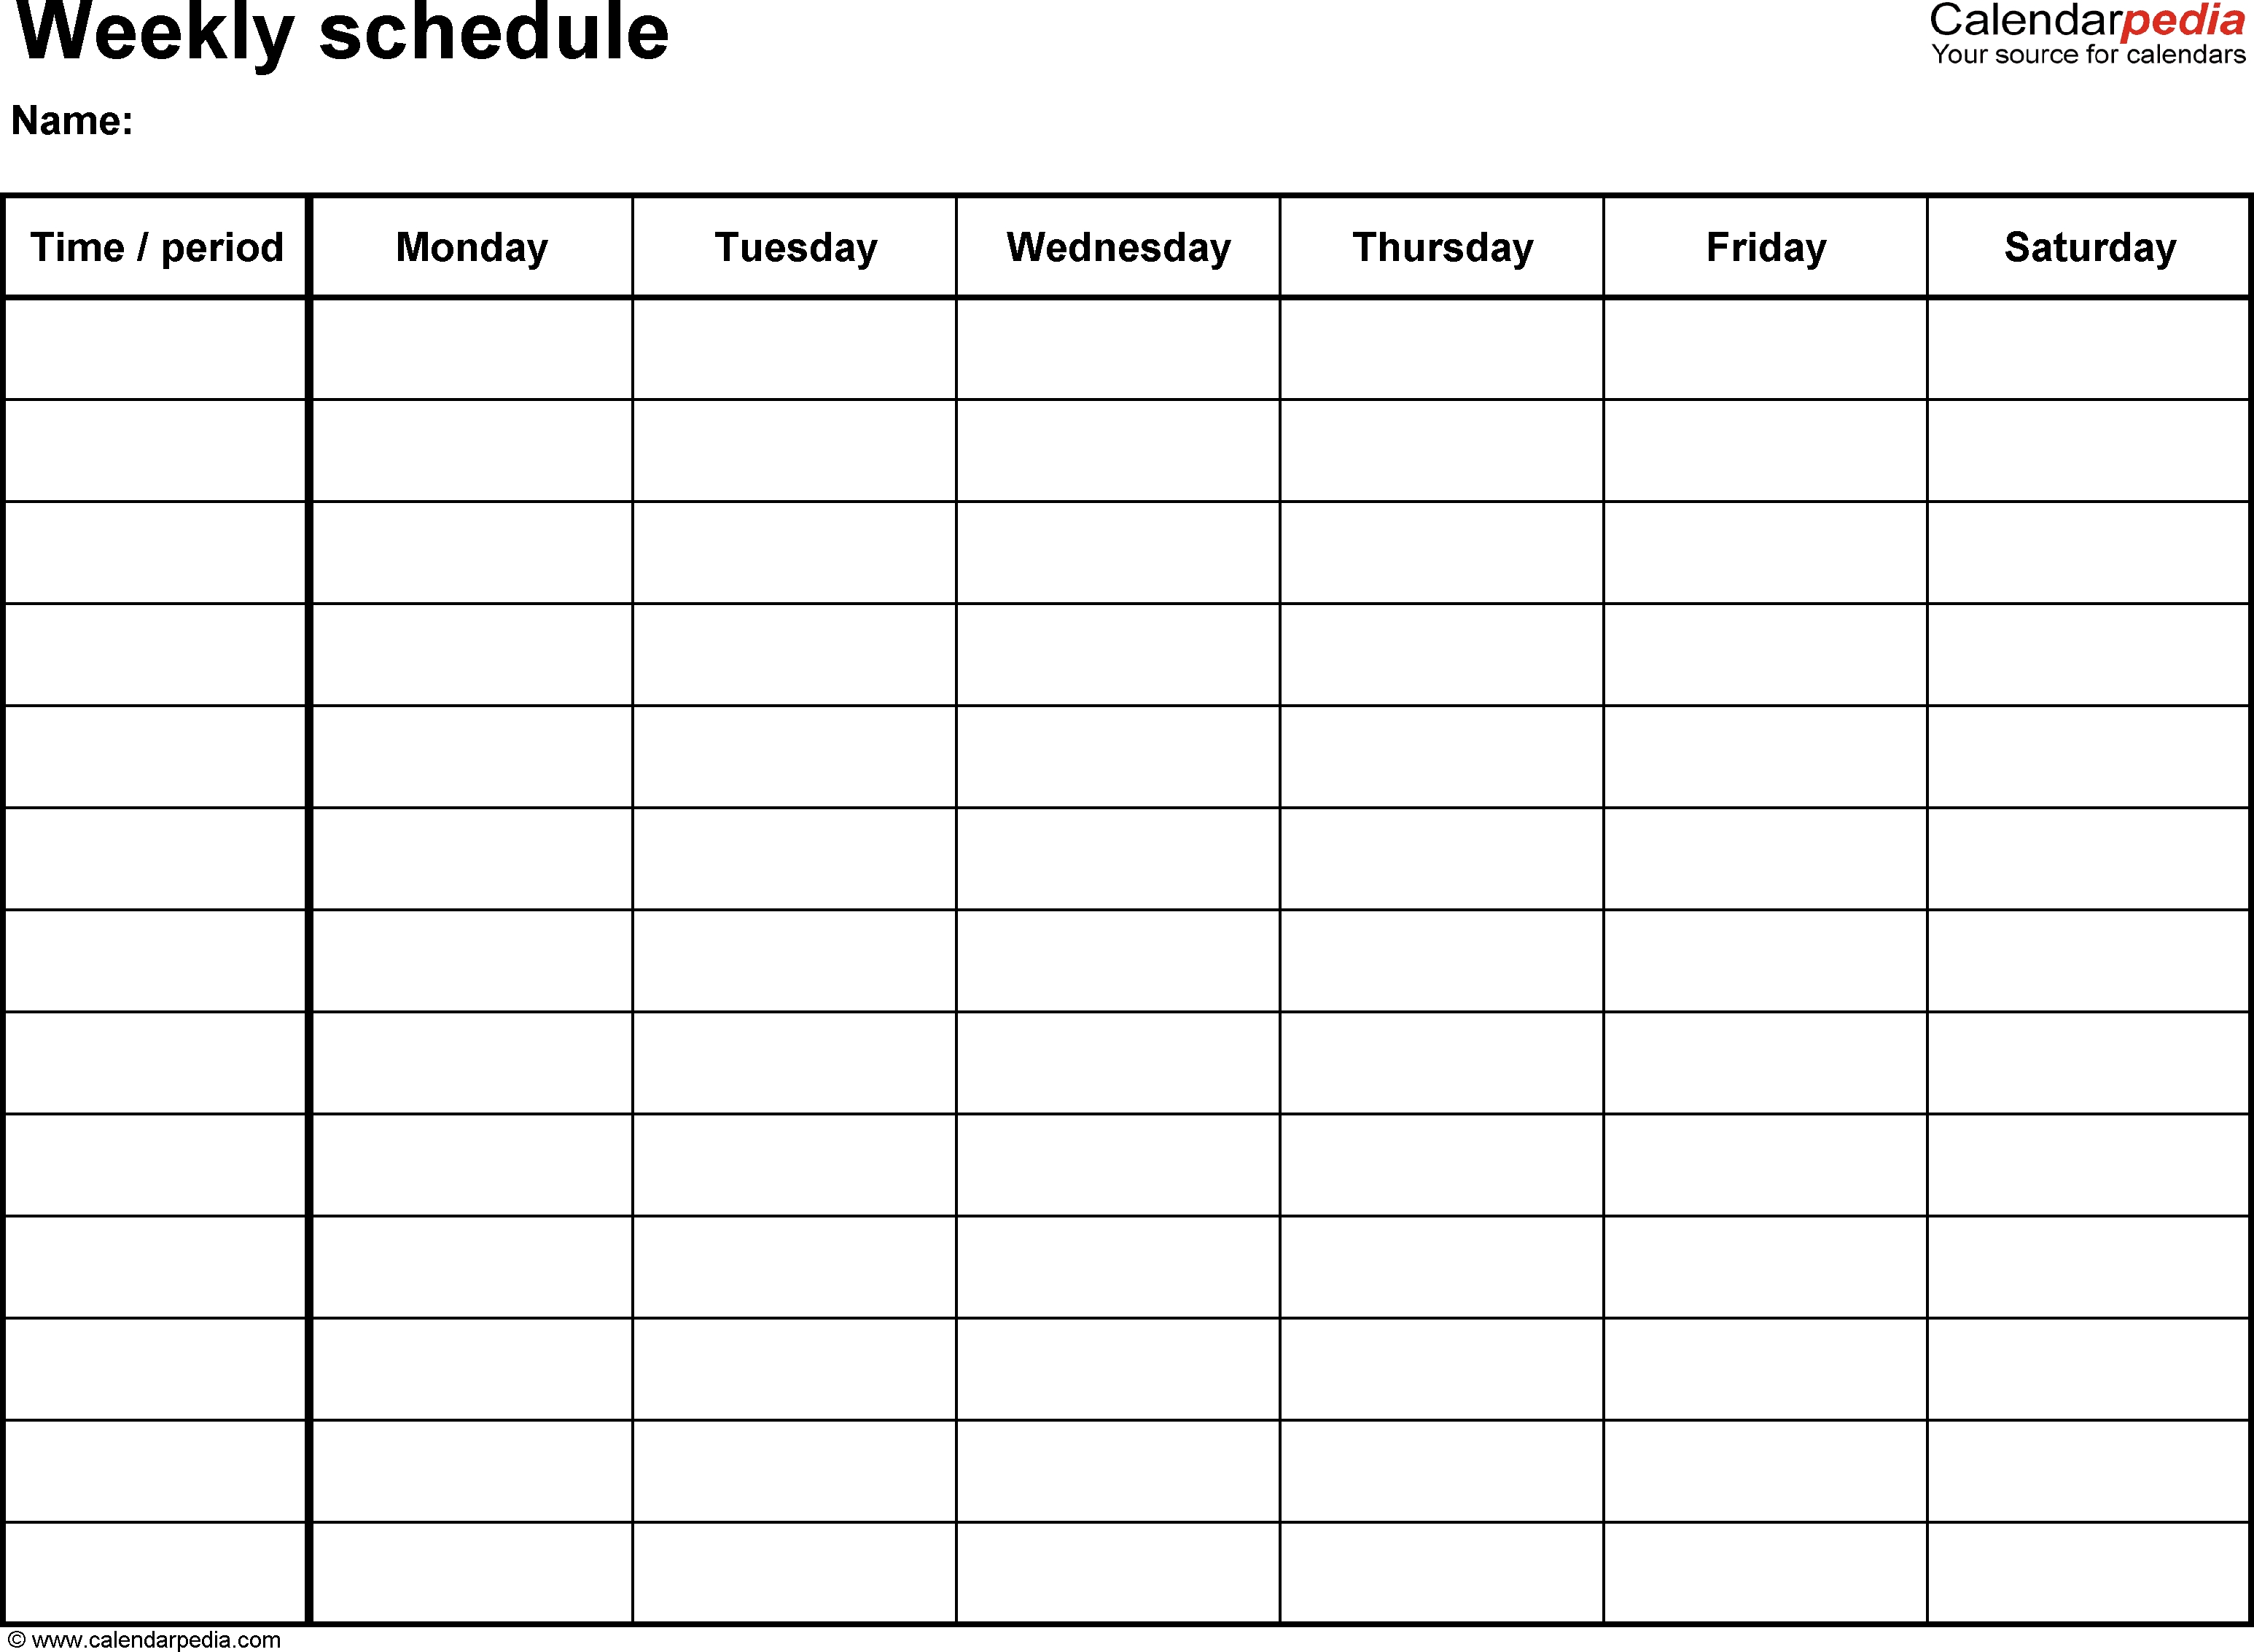 Free Weekly Schedule Templates For Word - 18 Templates  Blank Weekly Monday Through Friday Calendar Template